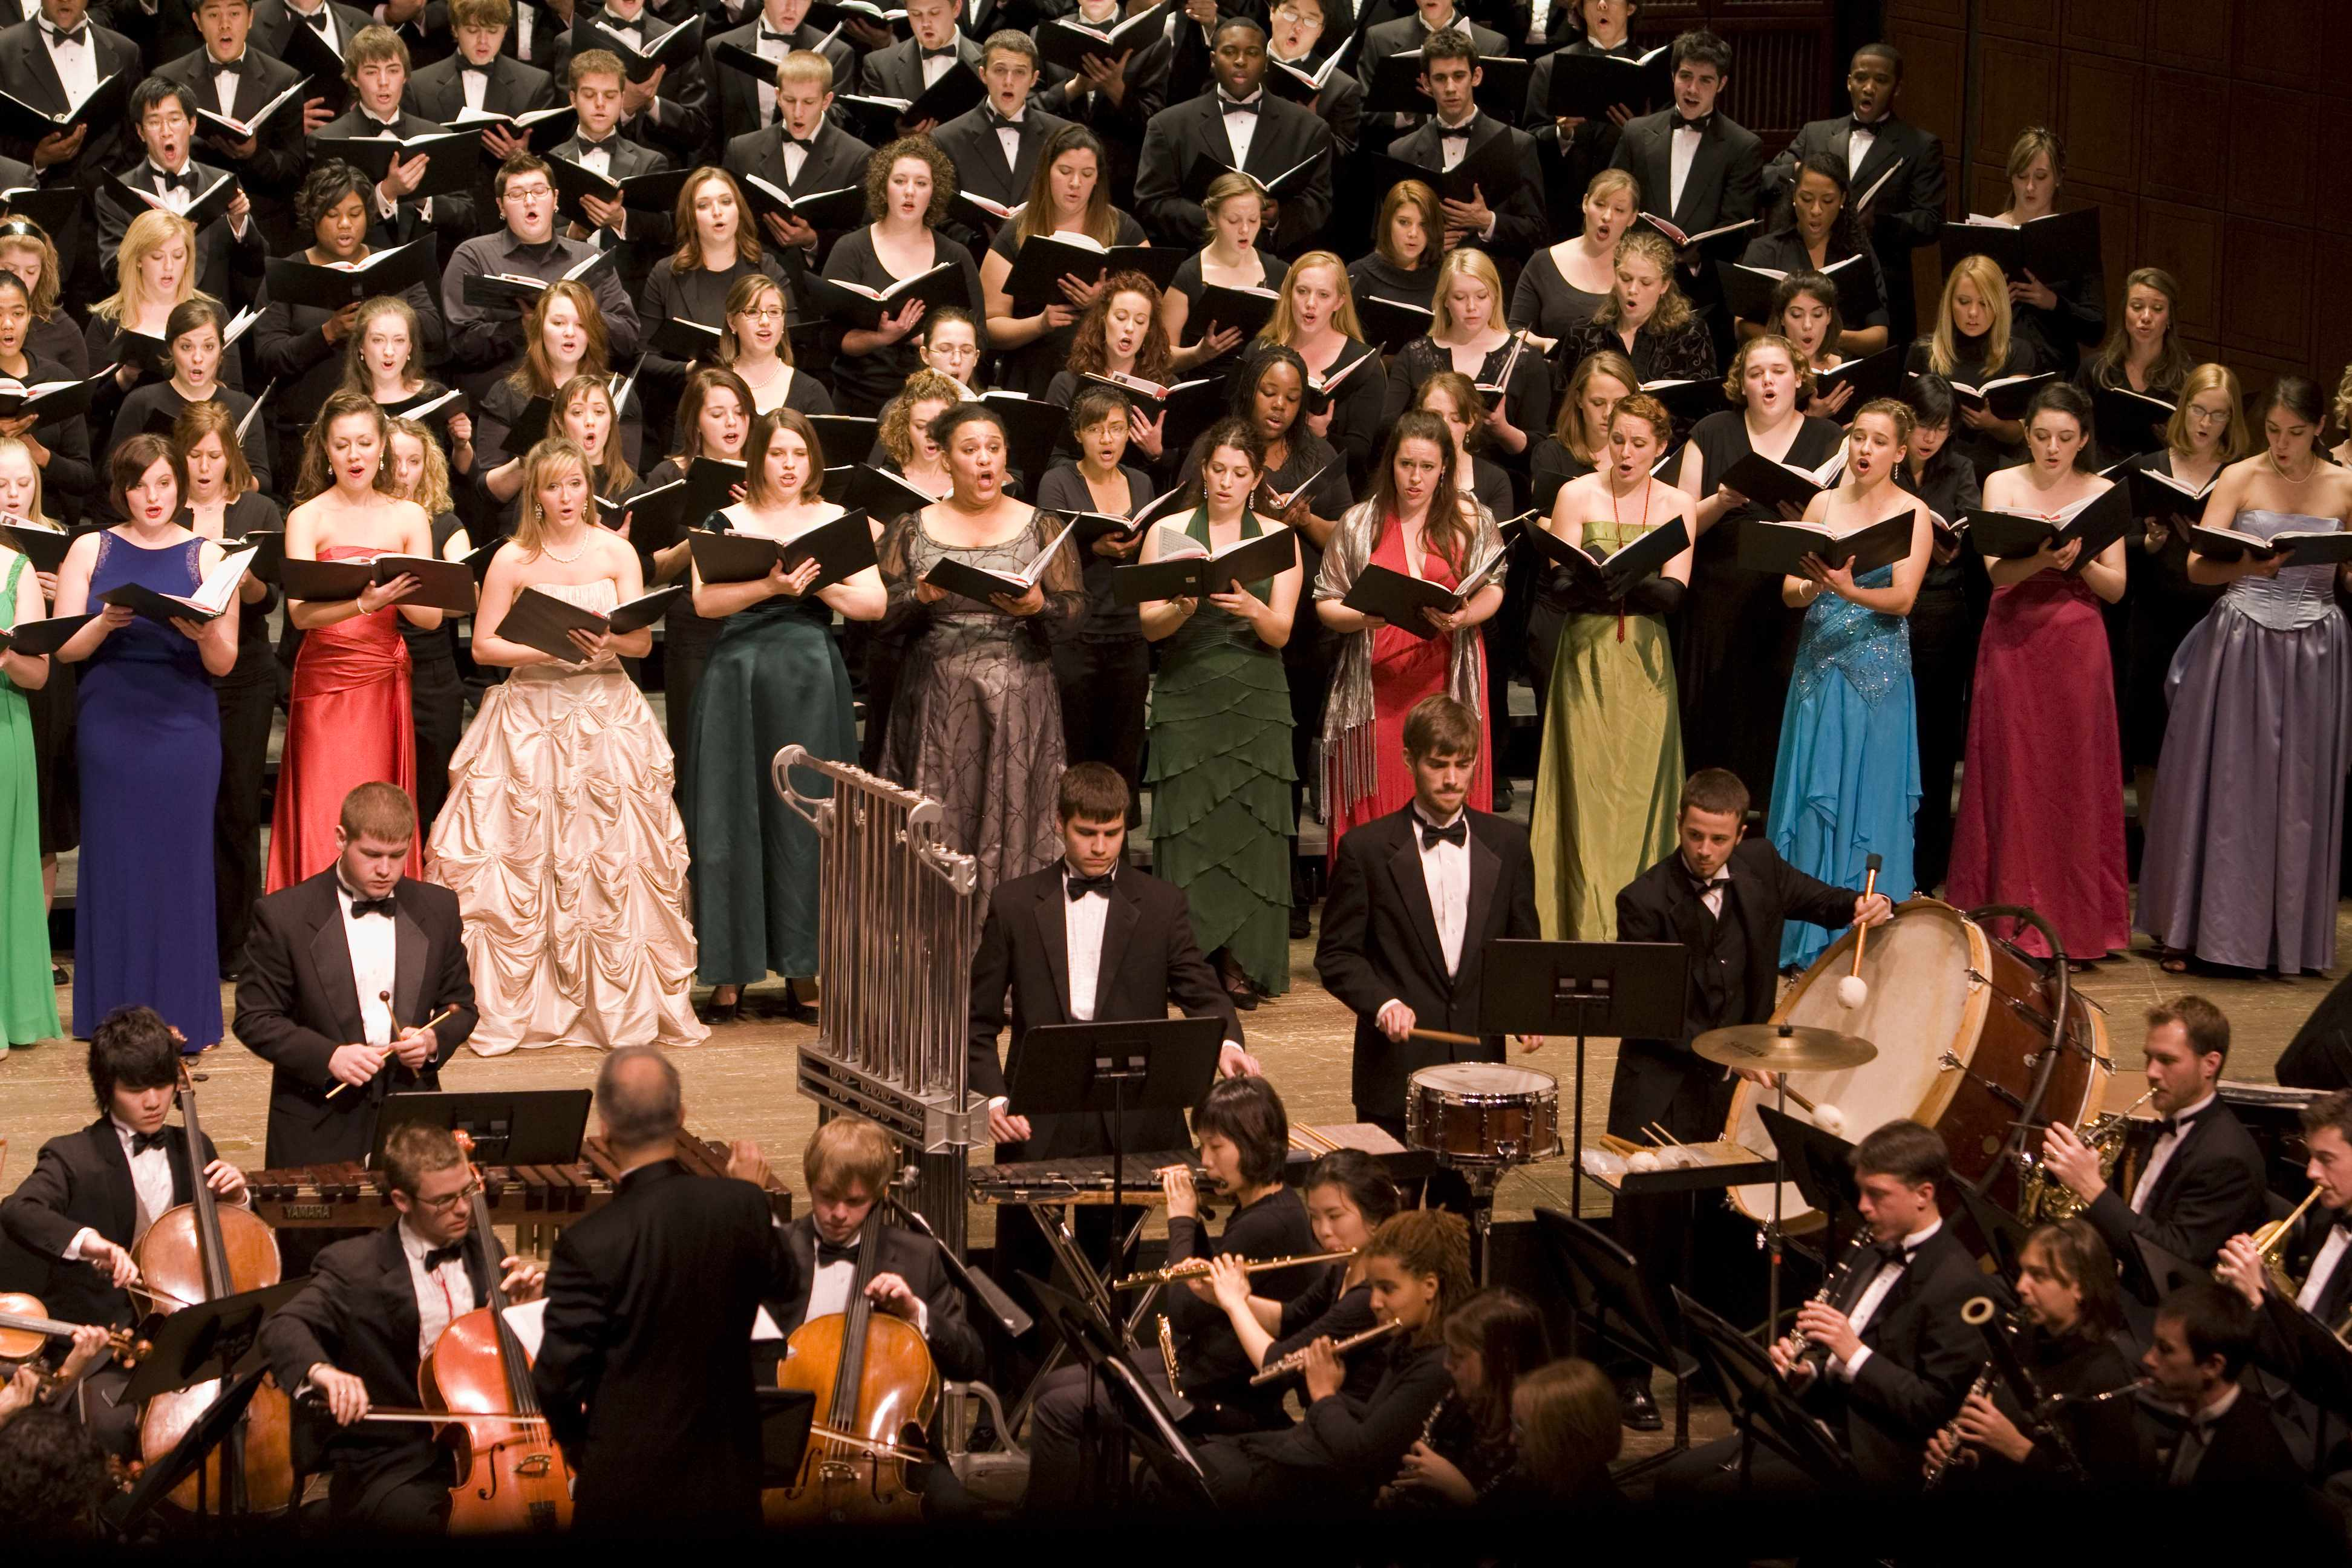 CCM's Feast of Carols Features Beloved Sounds of the ...